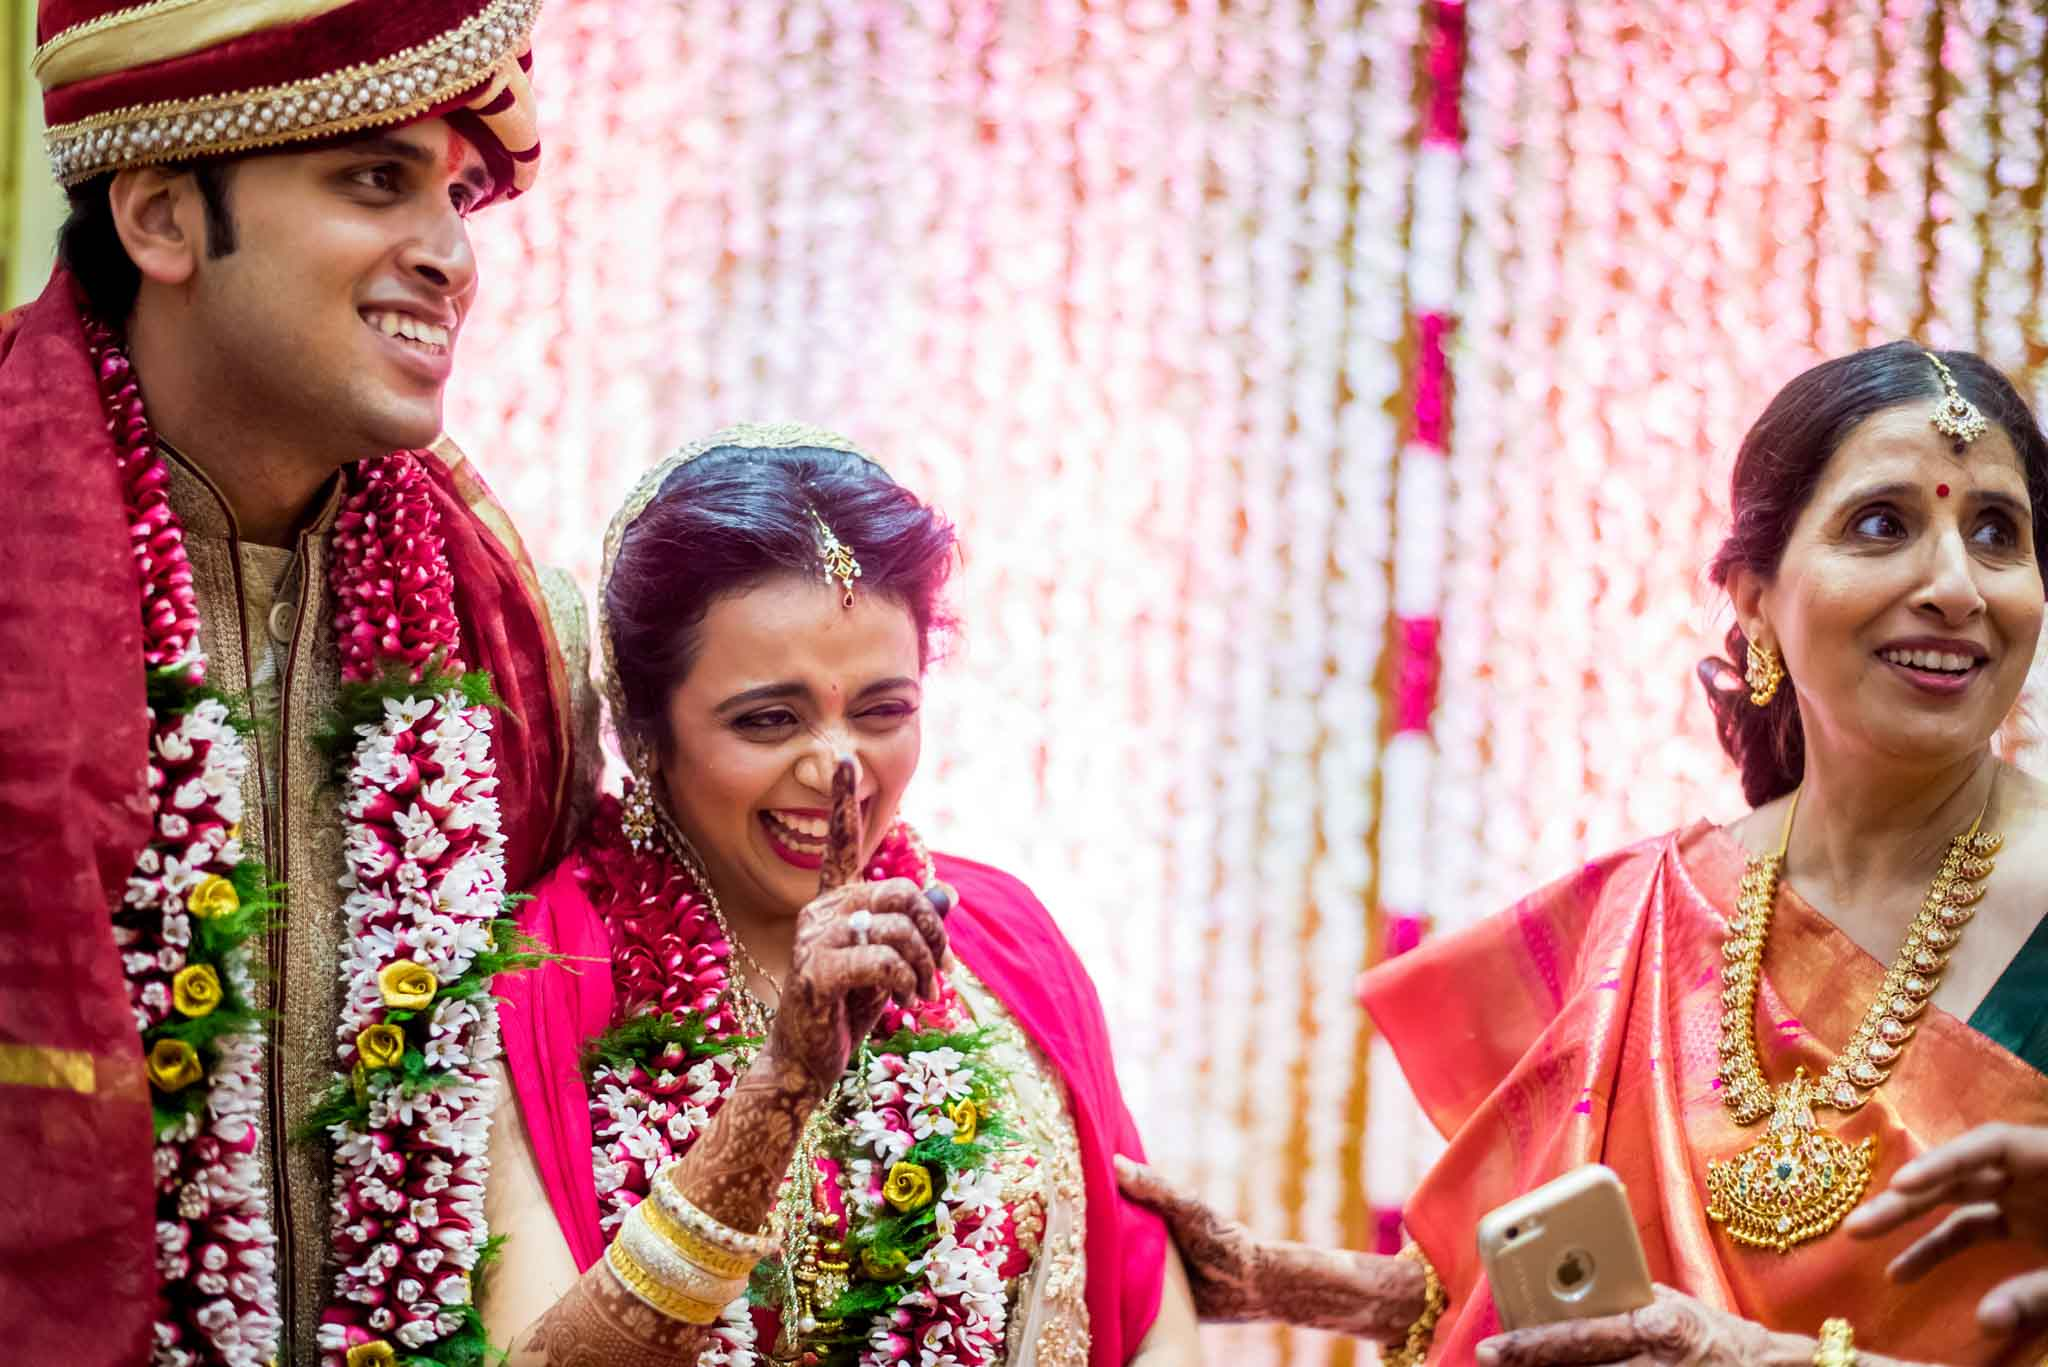 mumbai-candid-photography-wedding-whatknot-kamal-amrohi-studios-49